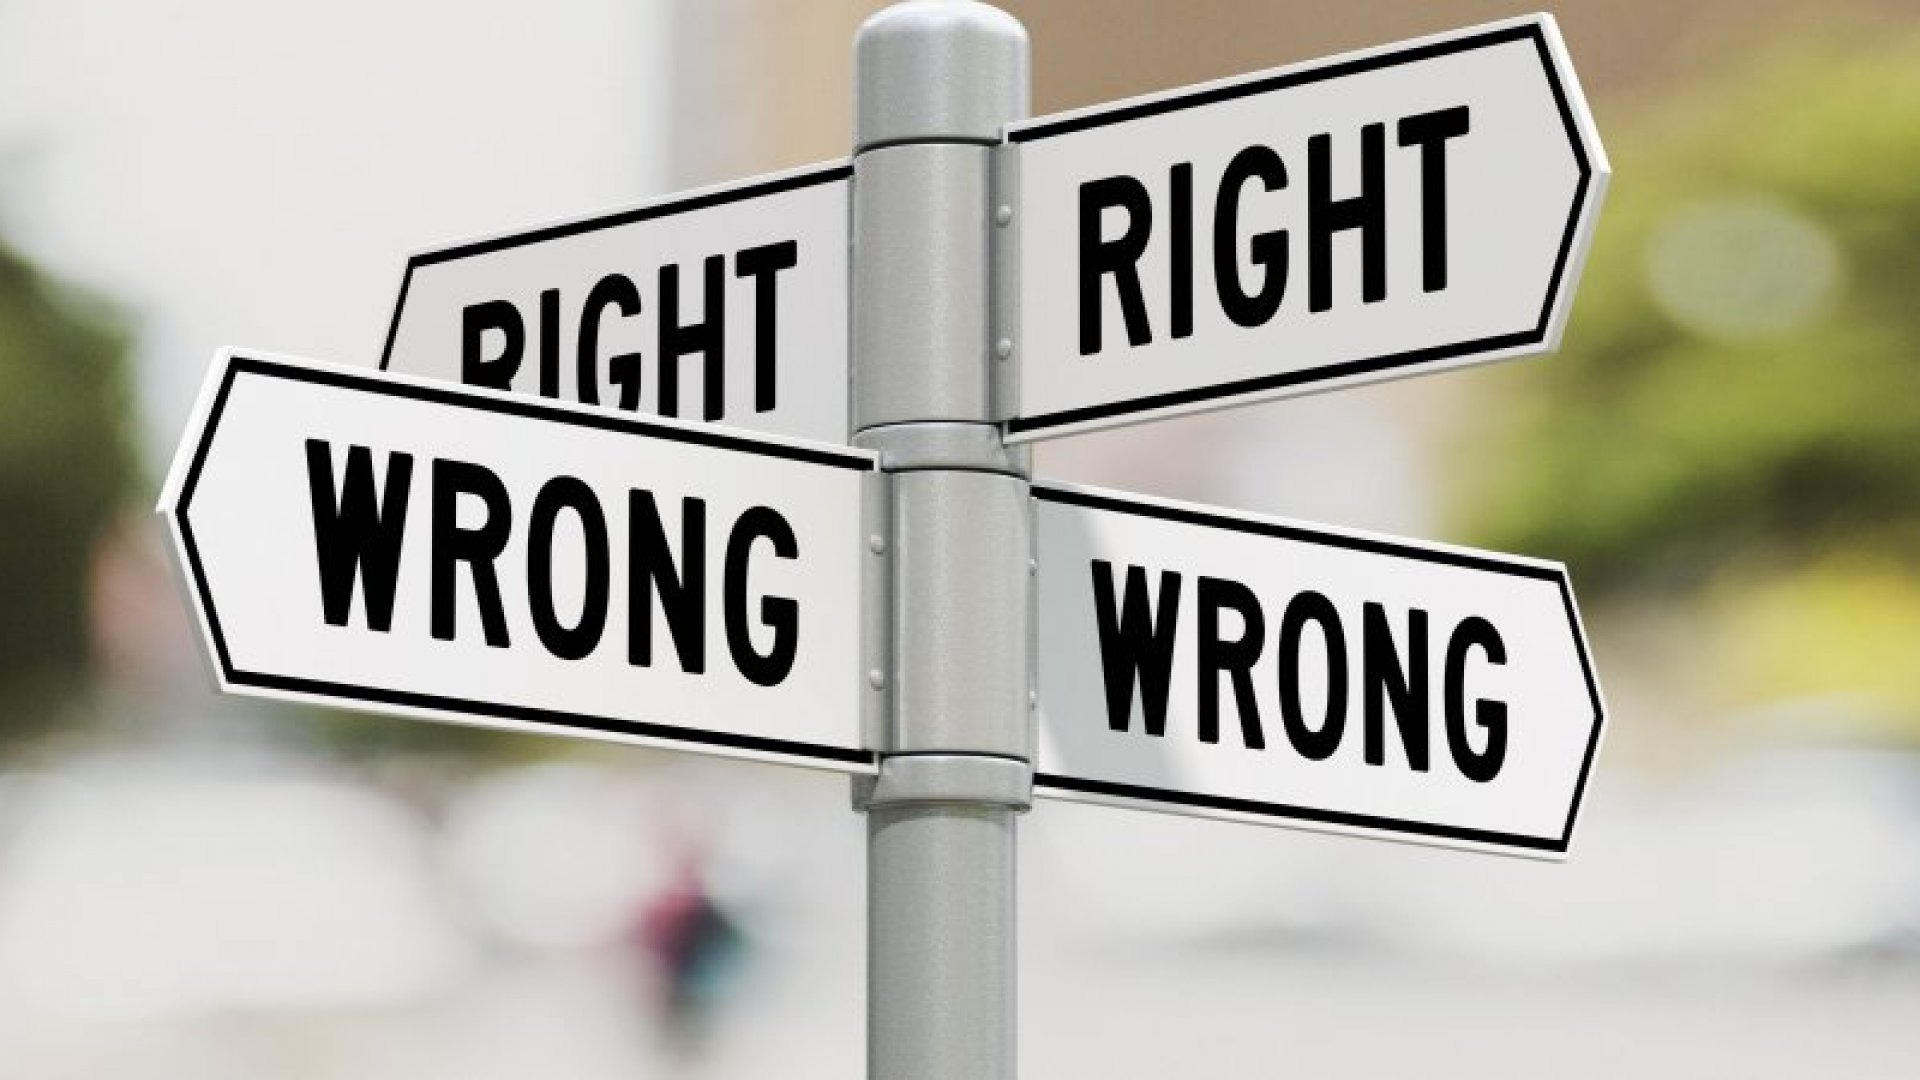 5 Questions to Weed Out Bad Advice